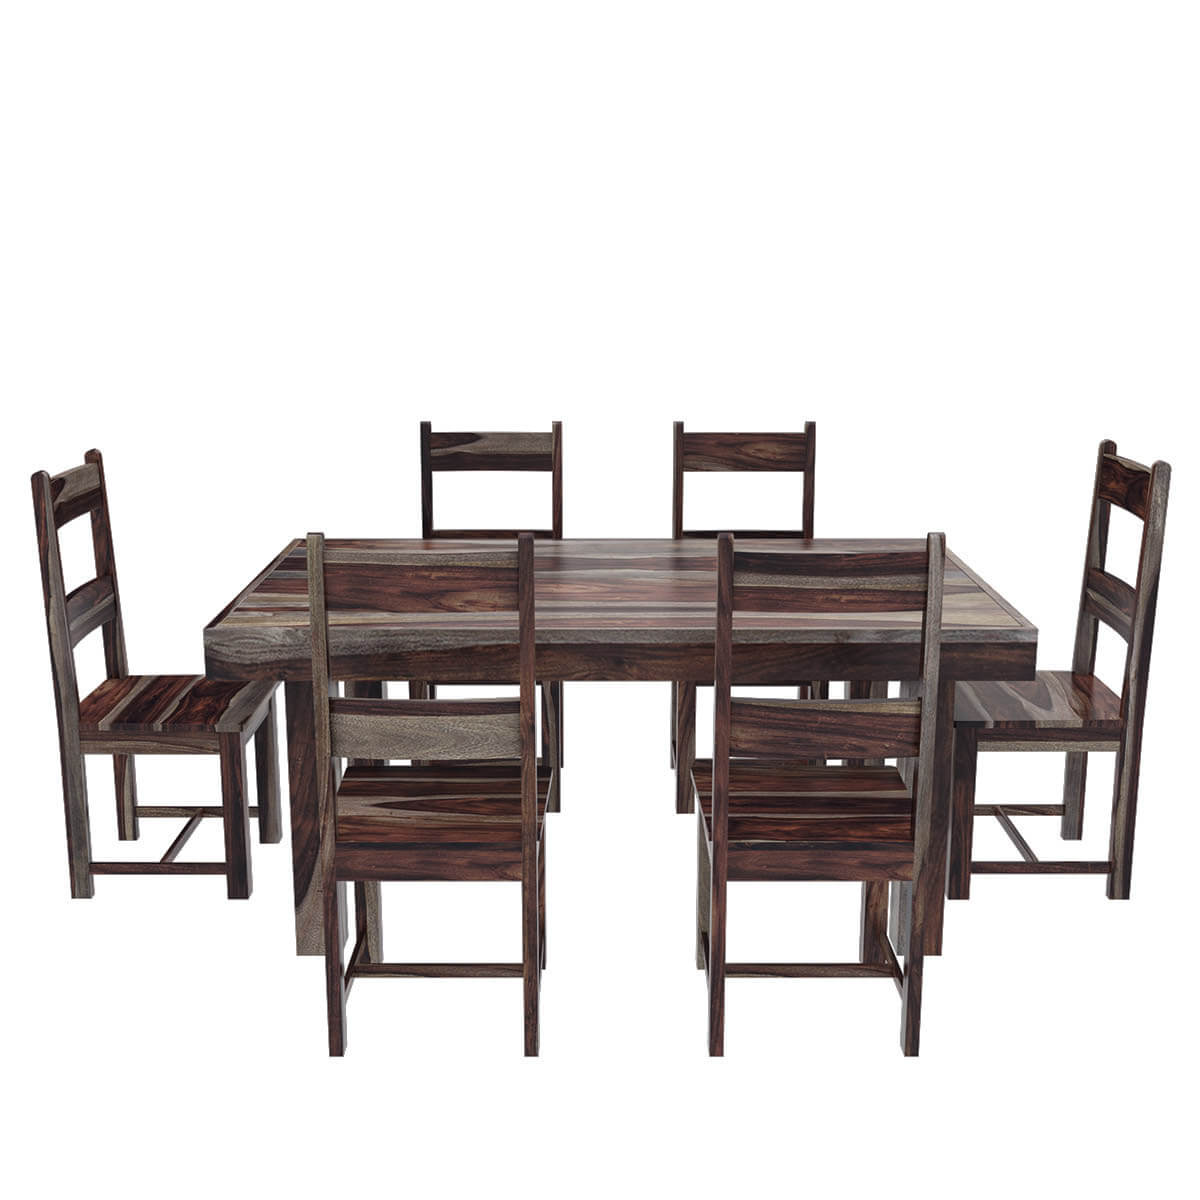 Frisco modern solid wood casual rustic dining room table for Modern dining room table sets